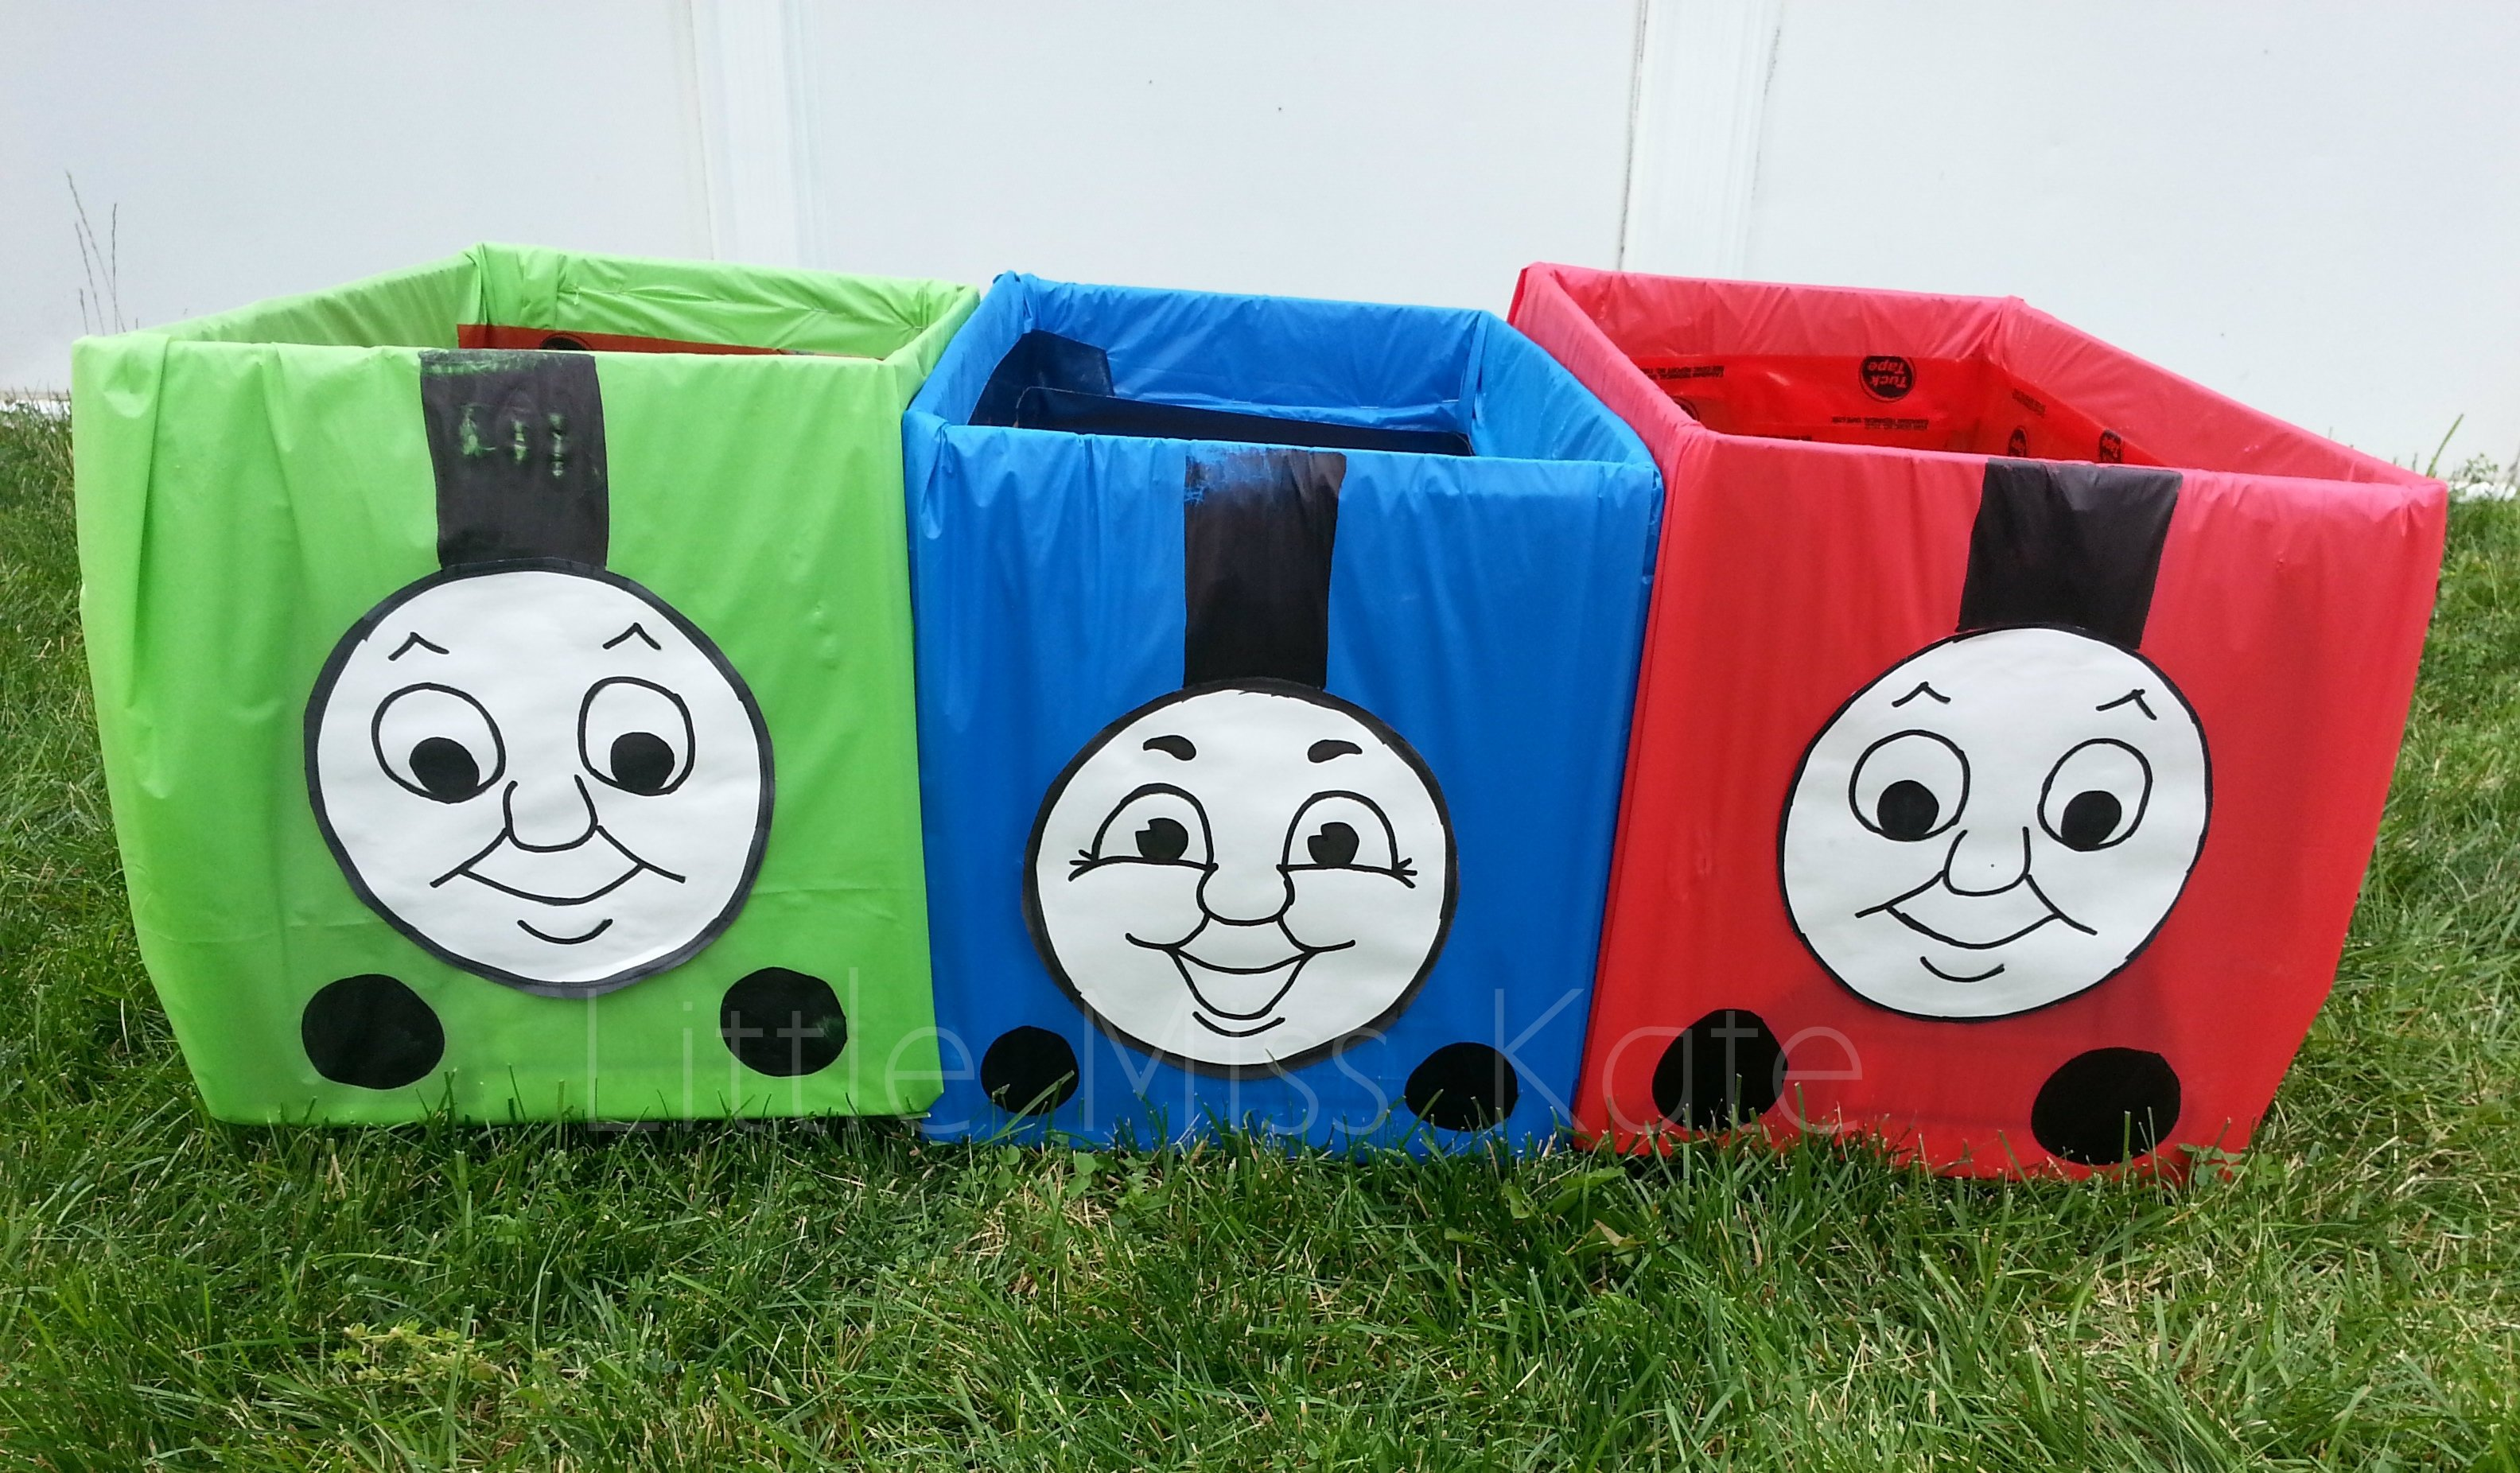 10 Most Recommended Thomas And Friends Birthday Party Ideas kids birthday party ideas thomas the train party ideas little 1 2020